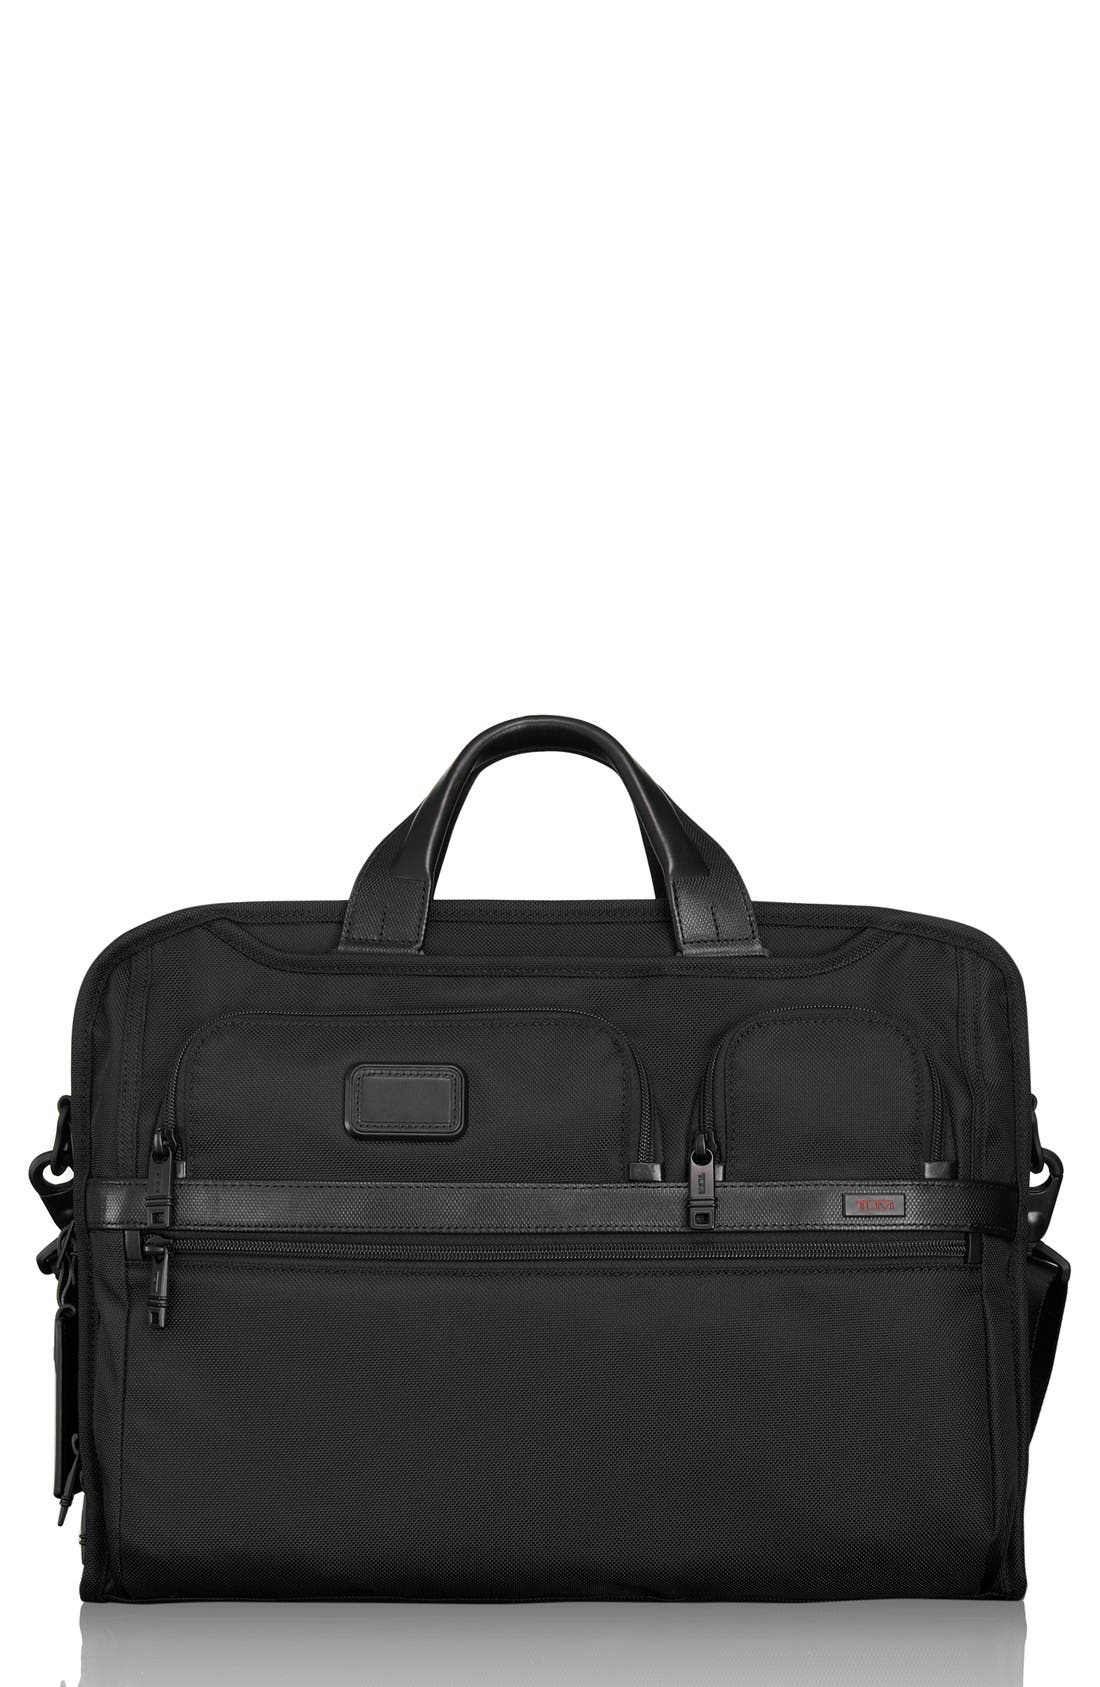 Tumi Alpha 2 Laptop Briefcase with Tumi ID Lock Pocket